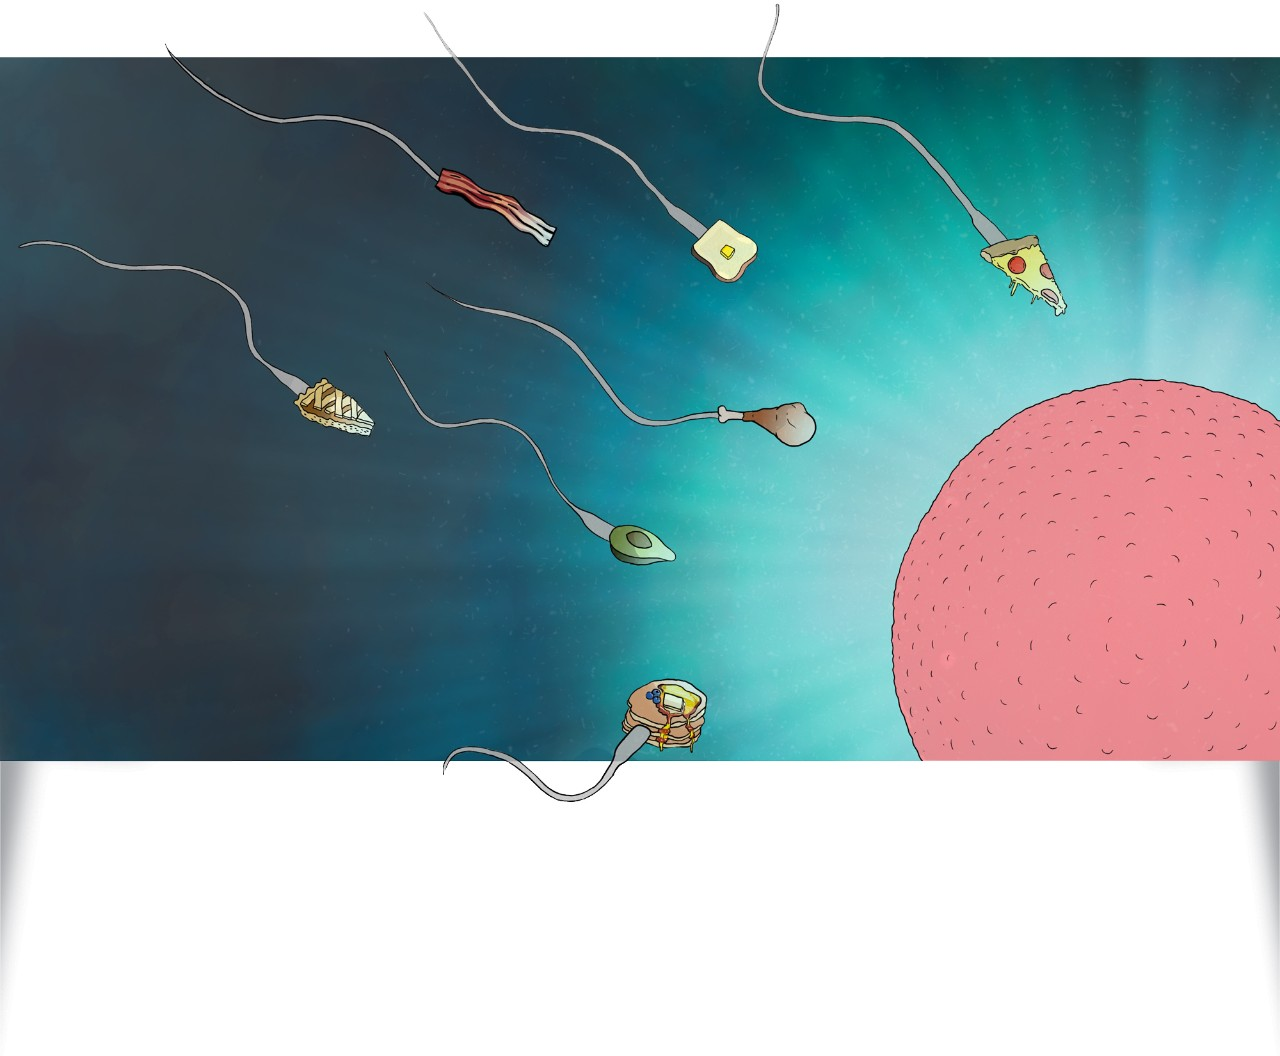 Original artwork shows food items with sperm tales swimming toward an egg